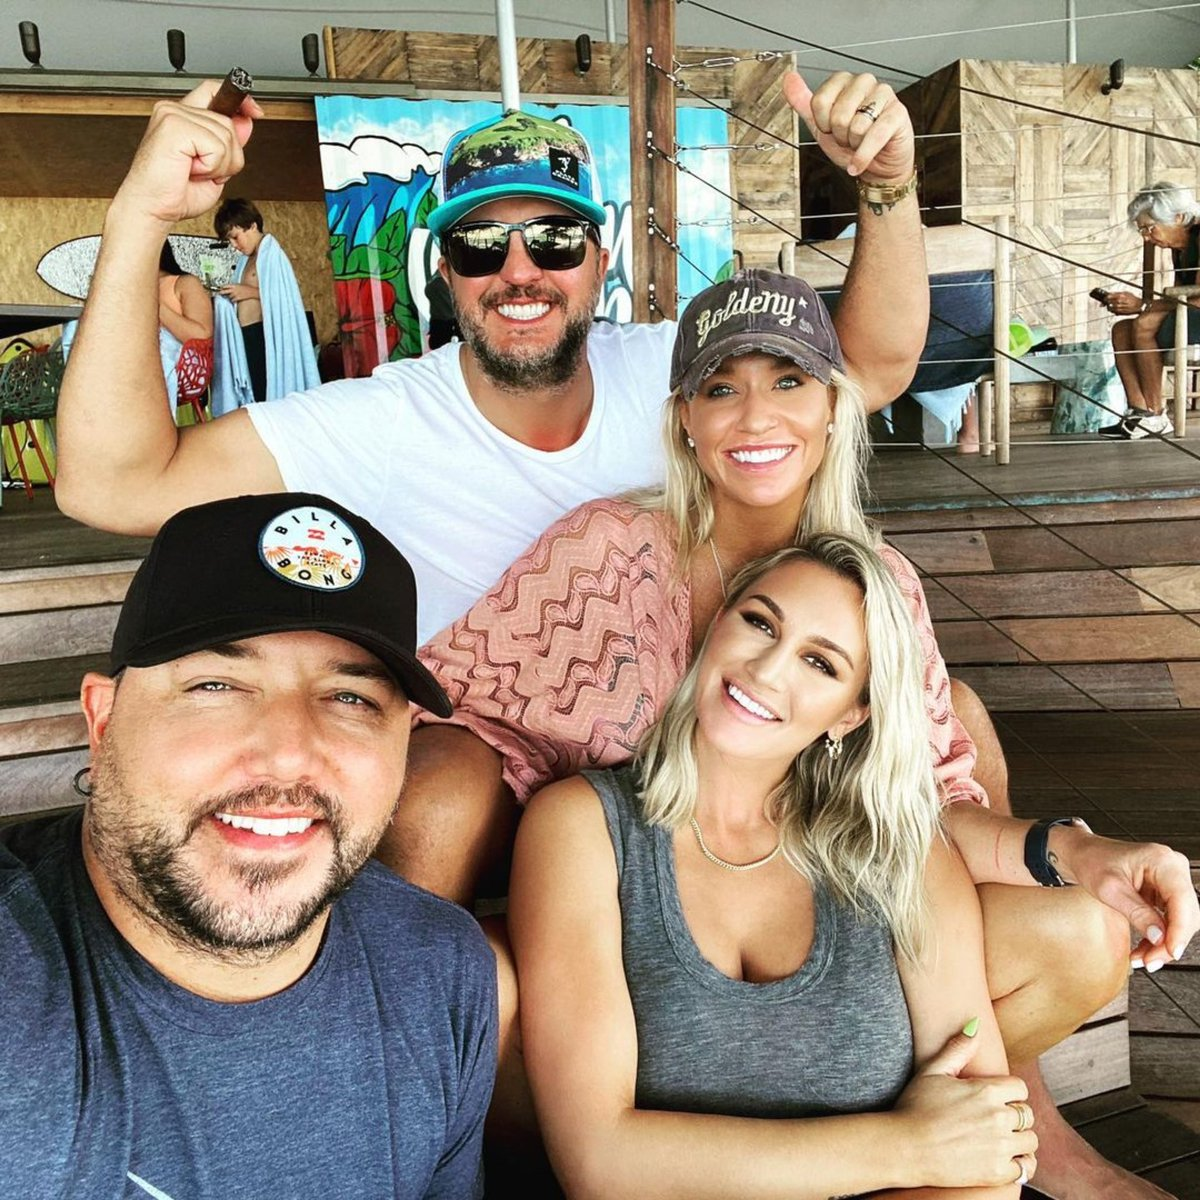 Happy New Year from the island 🏝 Everybody!! Happy bday Caroline Bryan 🎉 @LukeBryanOnline @BrittanyAldean